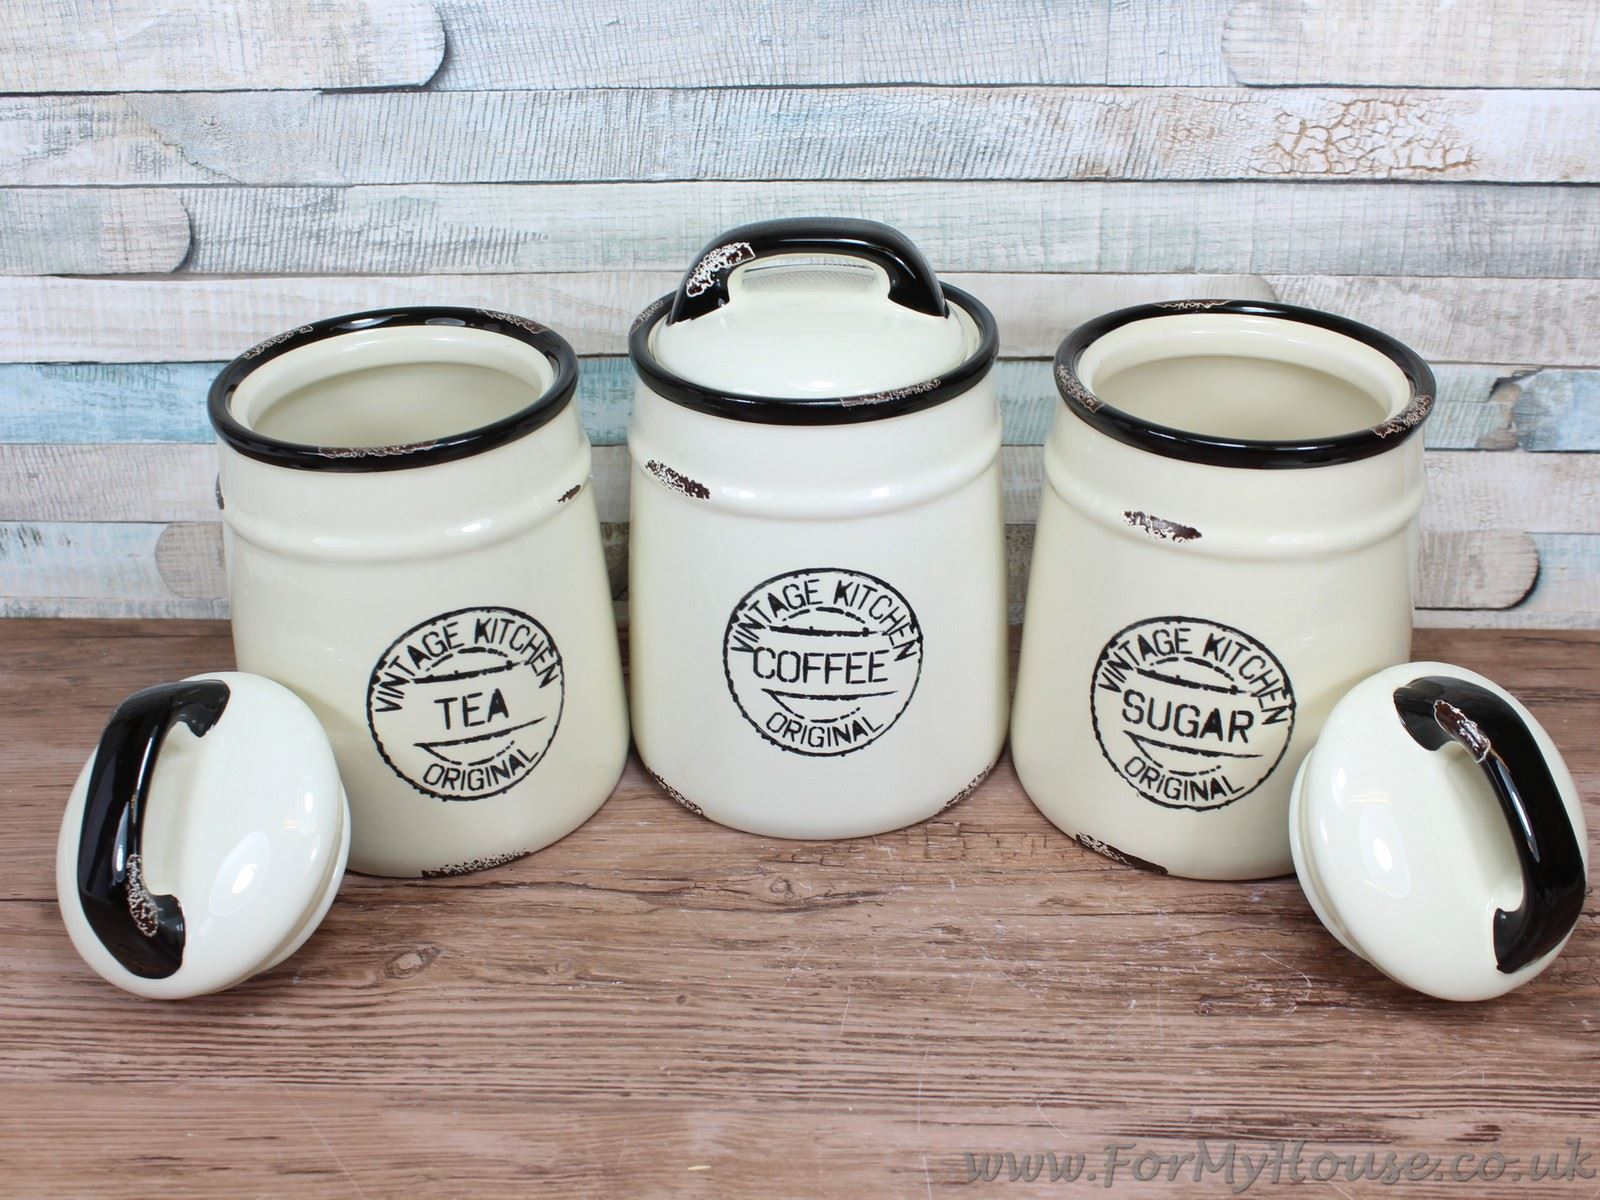 Vintage Kitchen Cream ceramic Tea coffee & sugar canisters